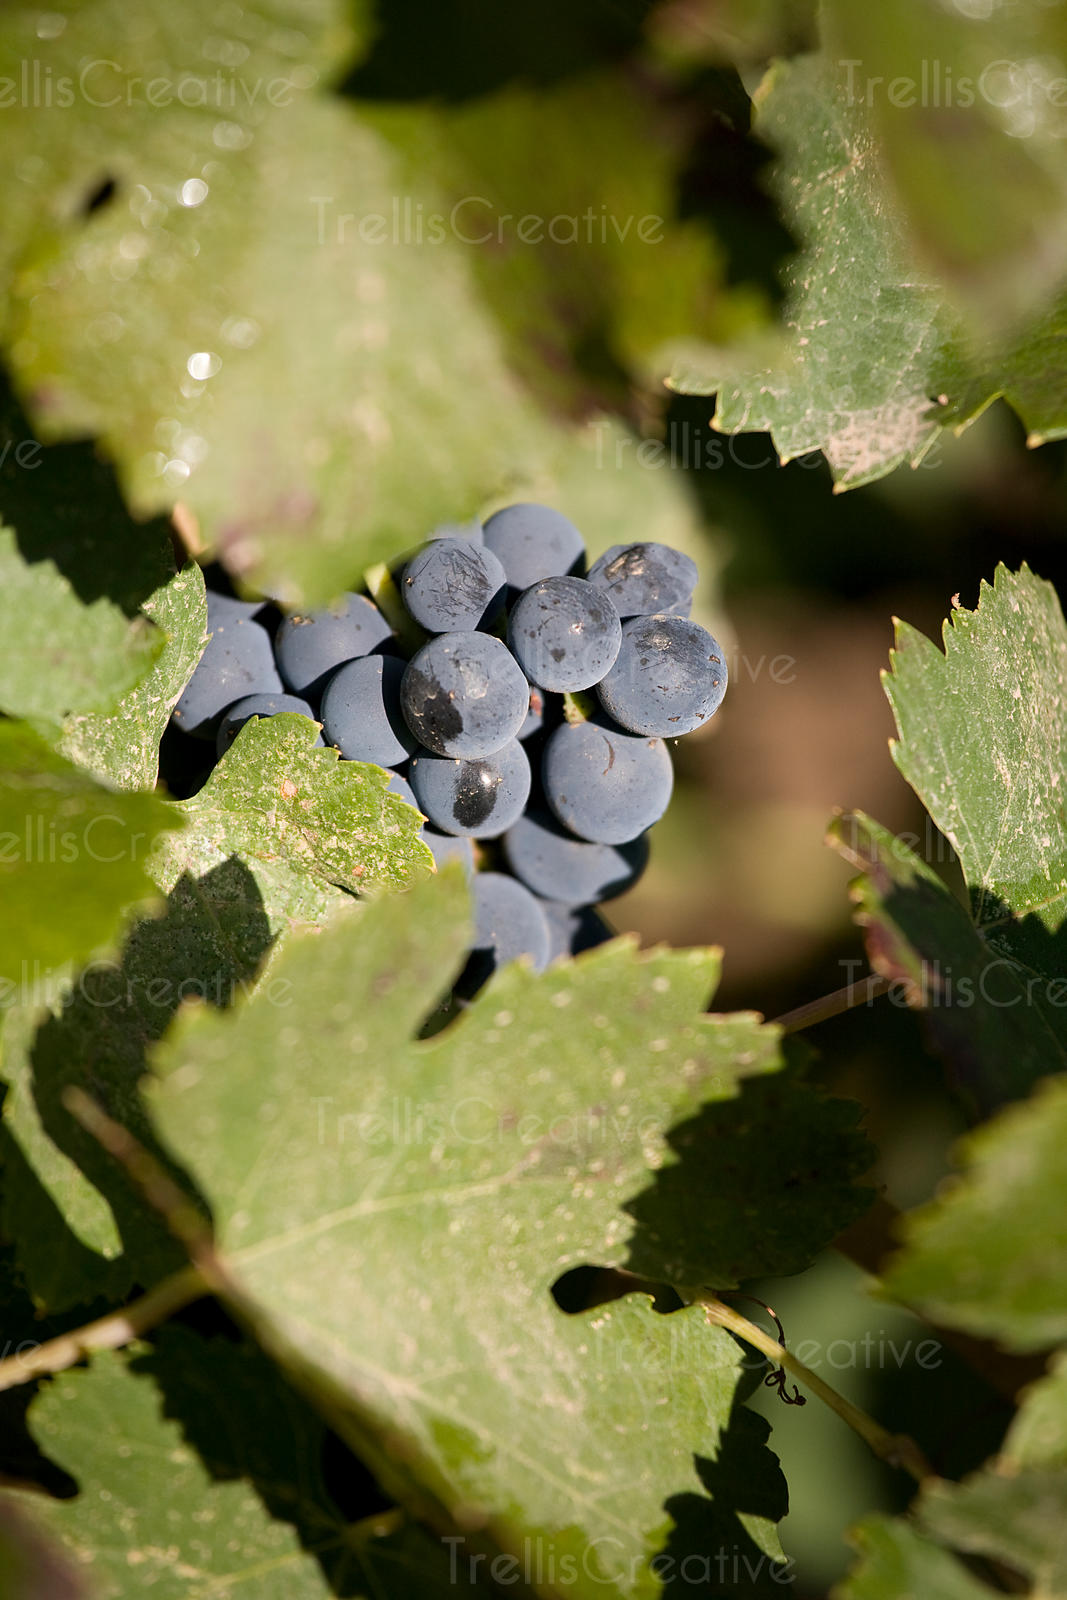 A ripe red grape cluster among vines